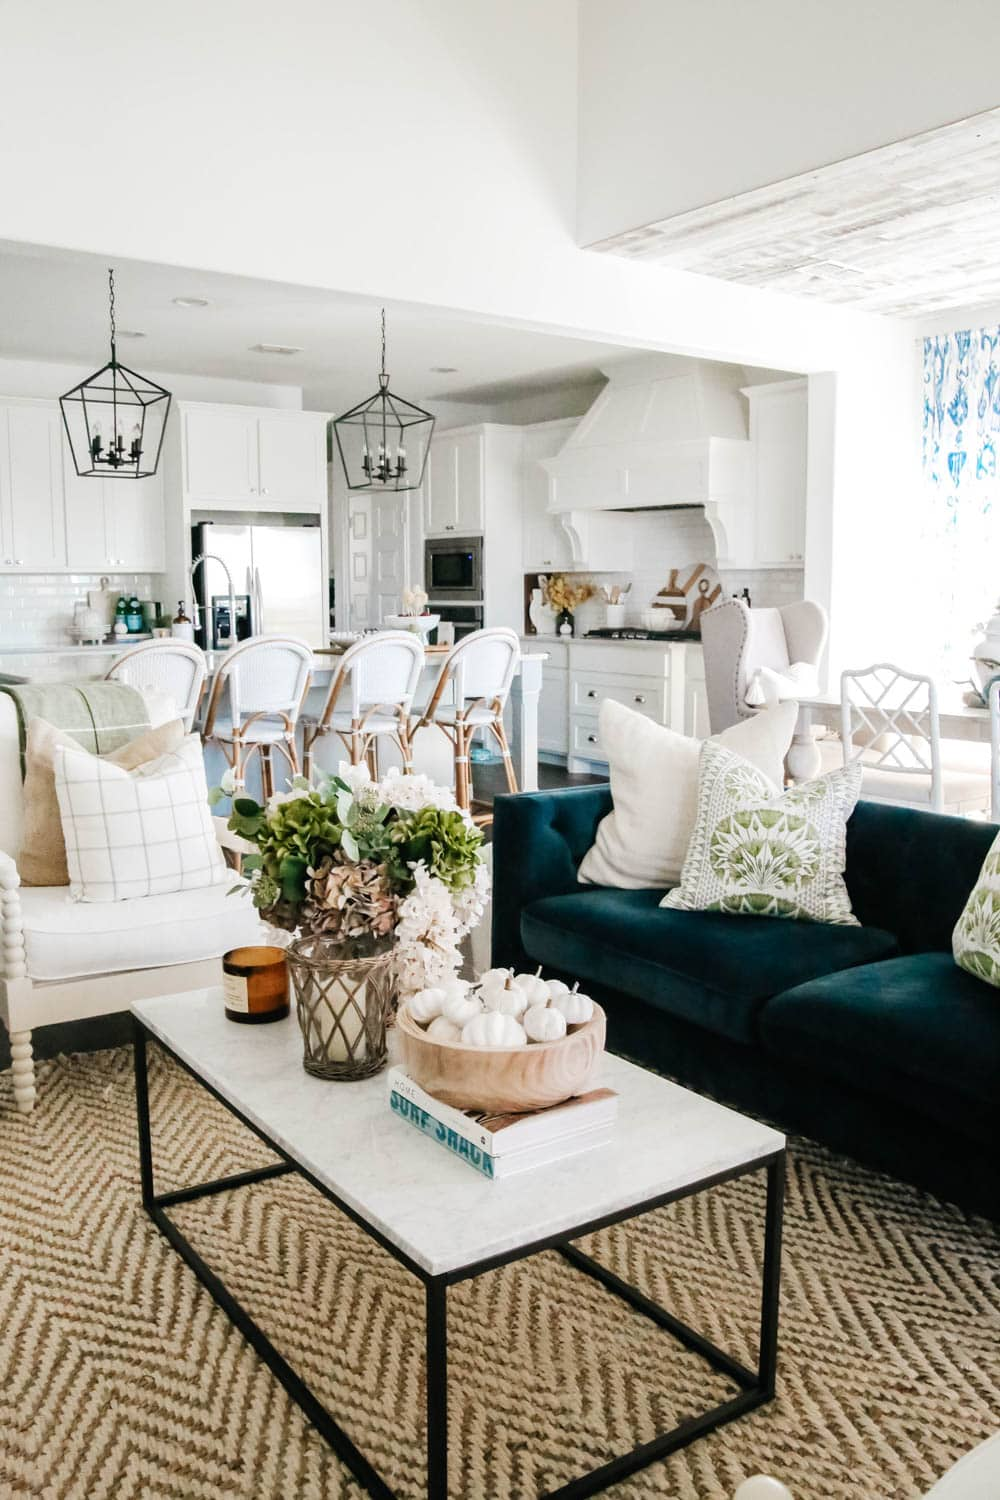 Shades of green and white in this fall home tour. #ABlissfulNest #fallhometour #falldecor